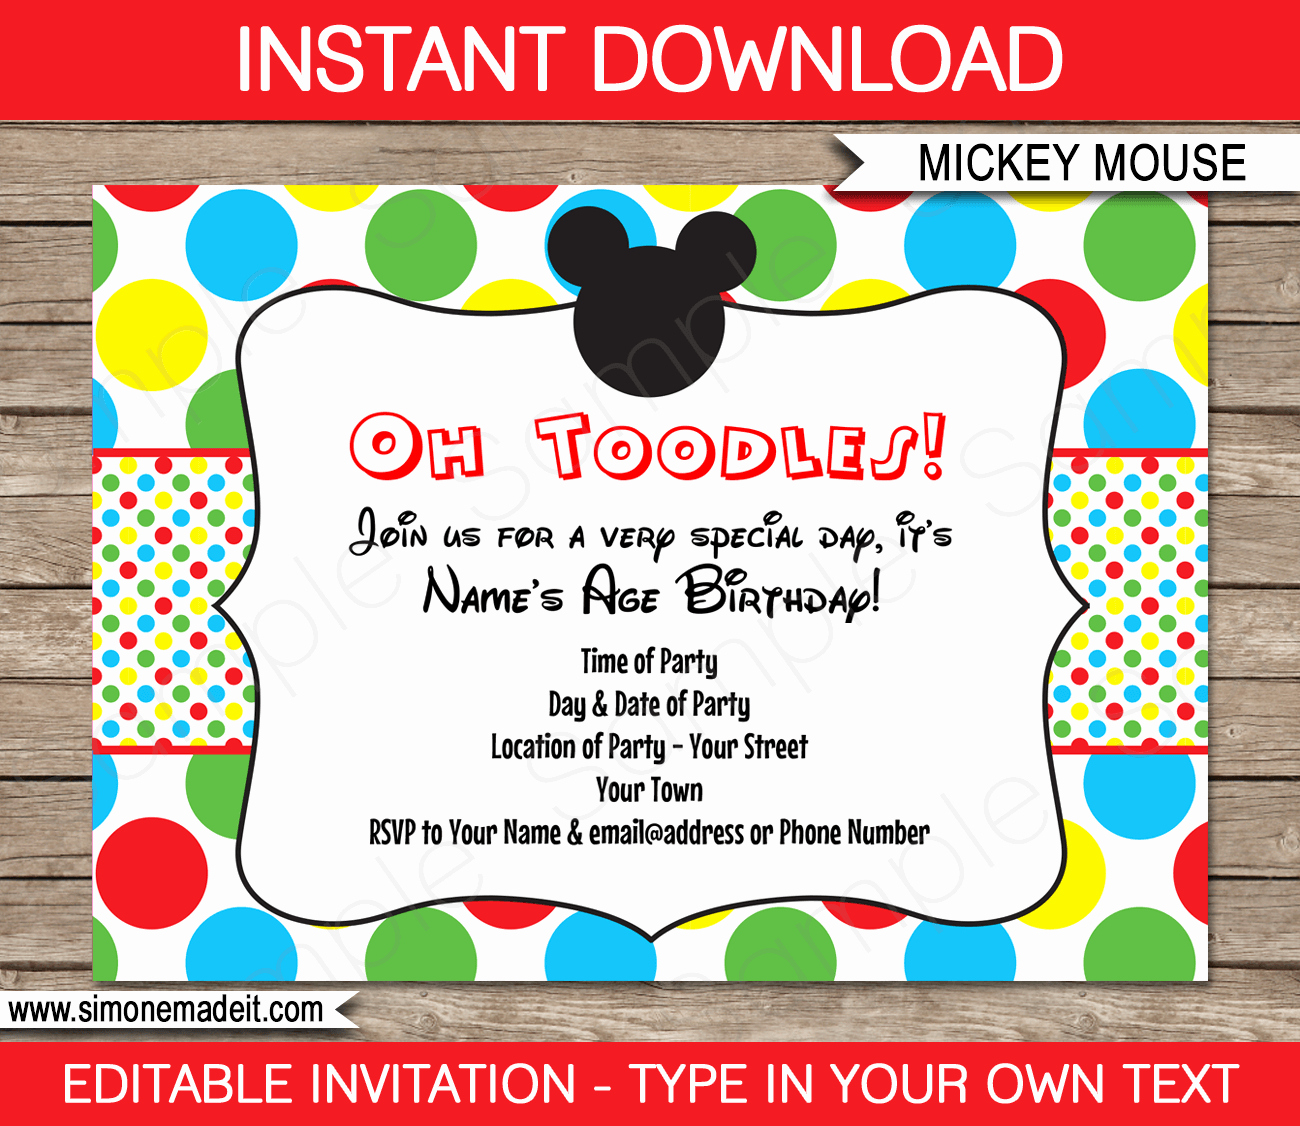 Mickey Mouse Invitation Template Beautiful Mickey Mouse Party Invitations Template